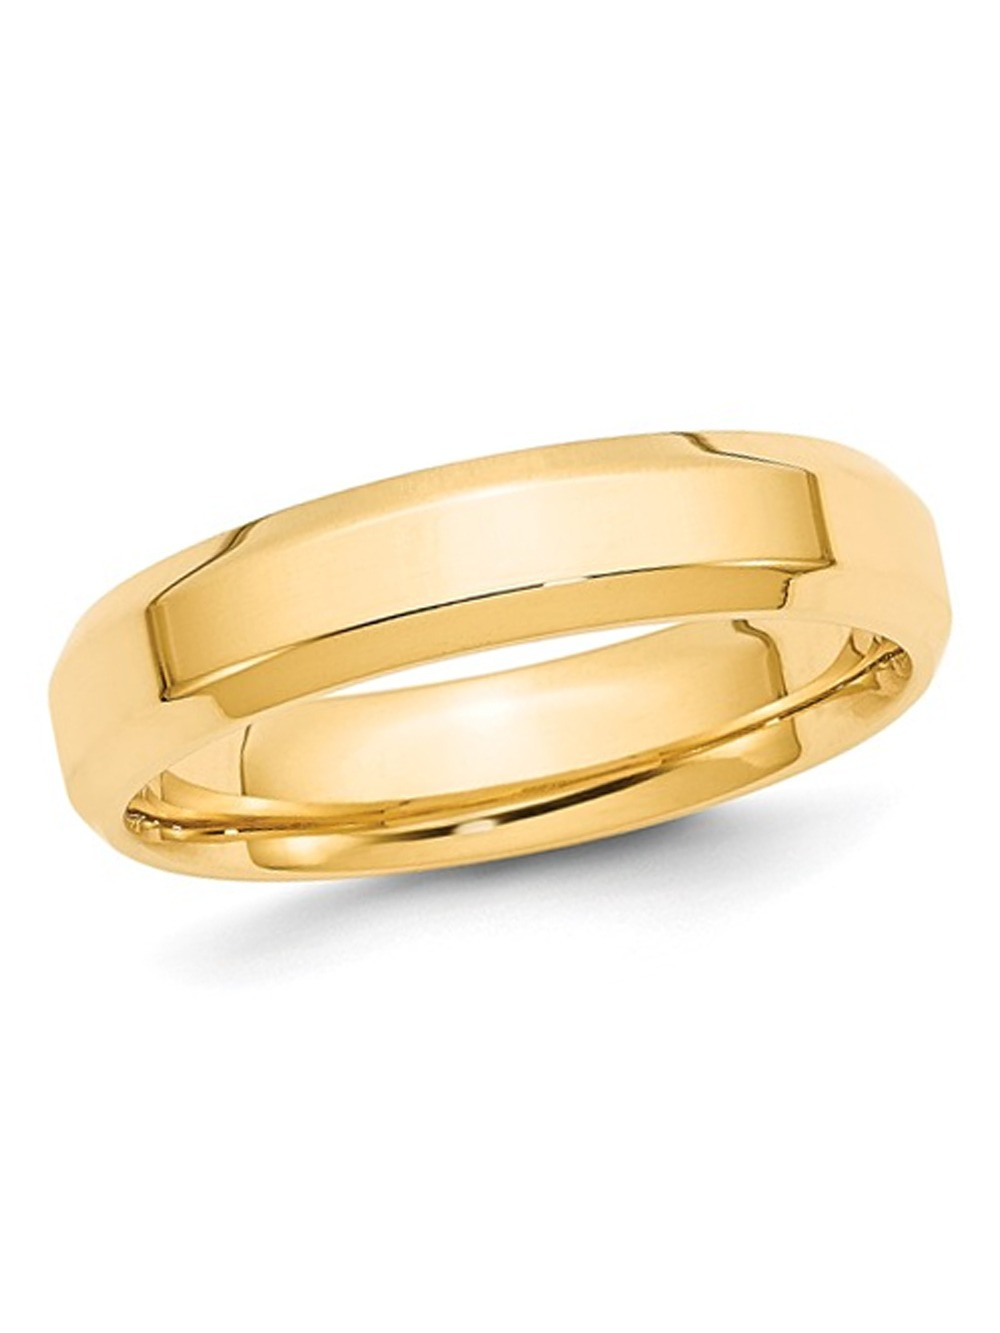 14K Solid Yellow White Gold Comfort Fit 5mm Beveled  Wedding Band Ring